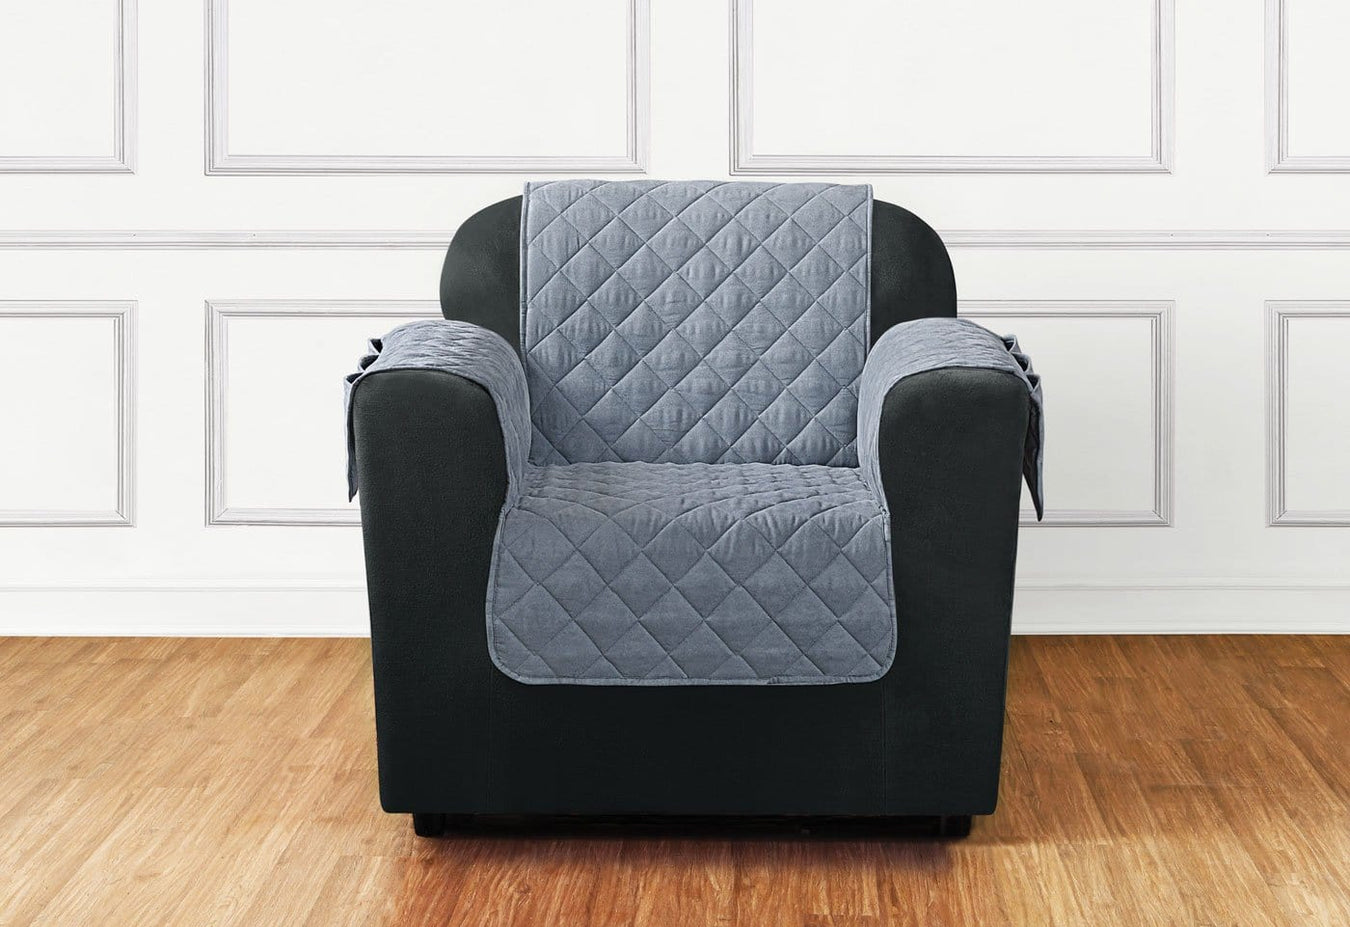 Breathable Mesh Chair Furniture Cover